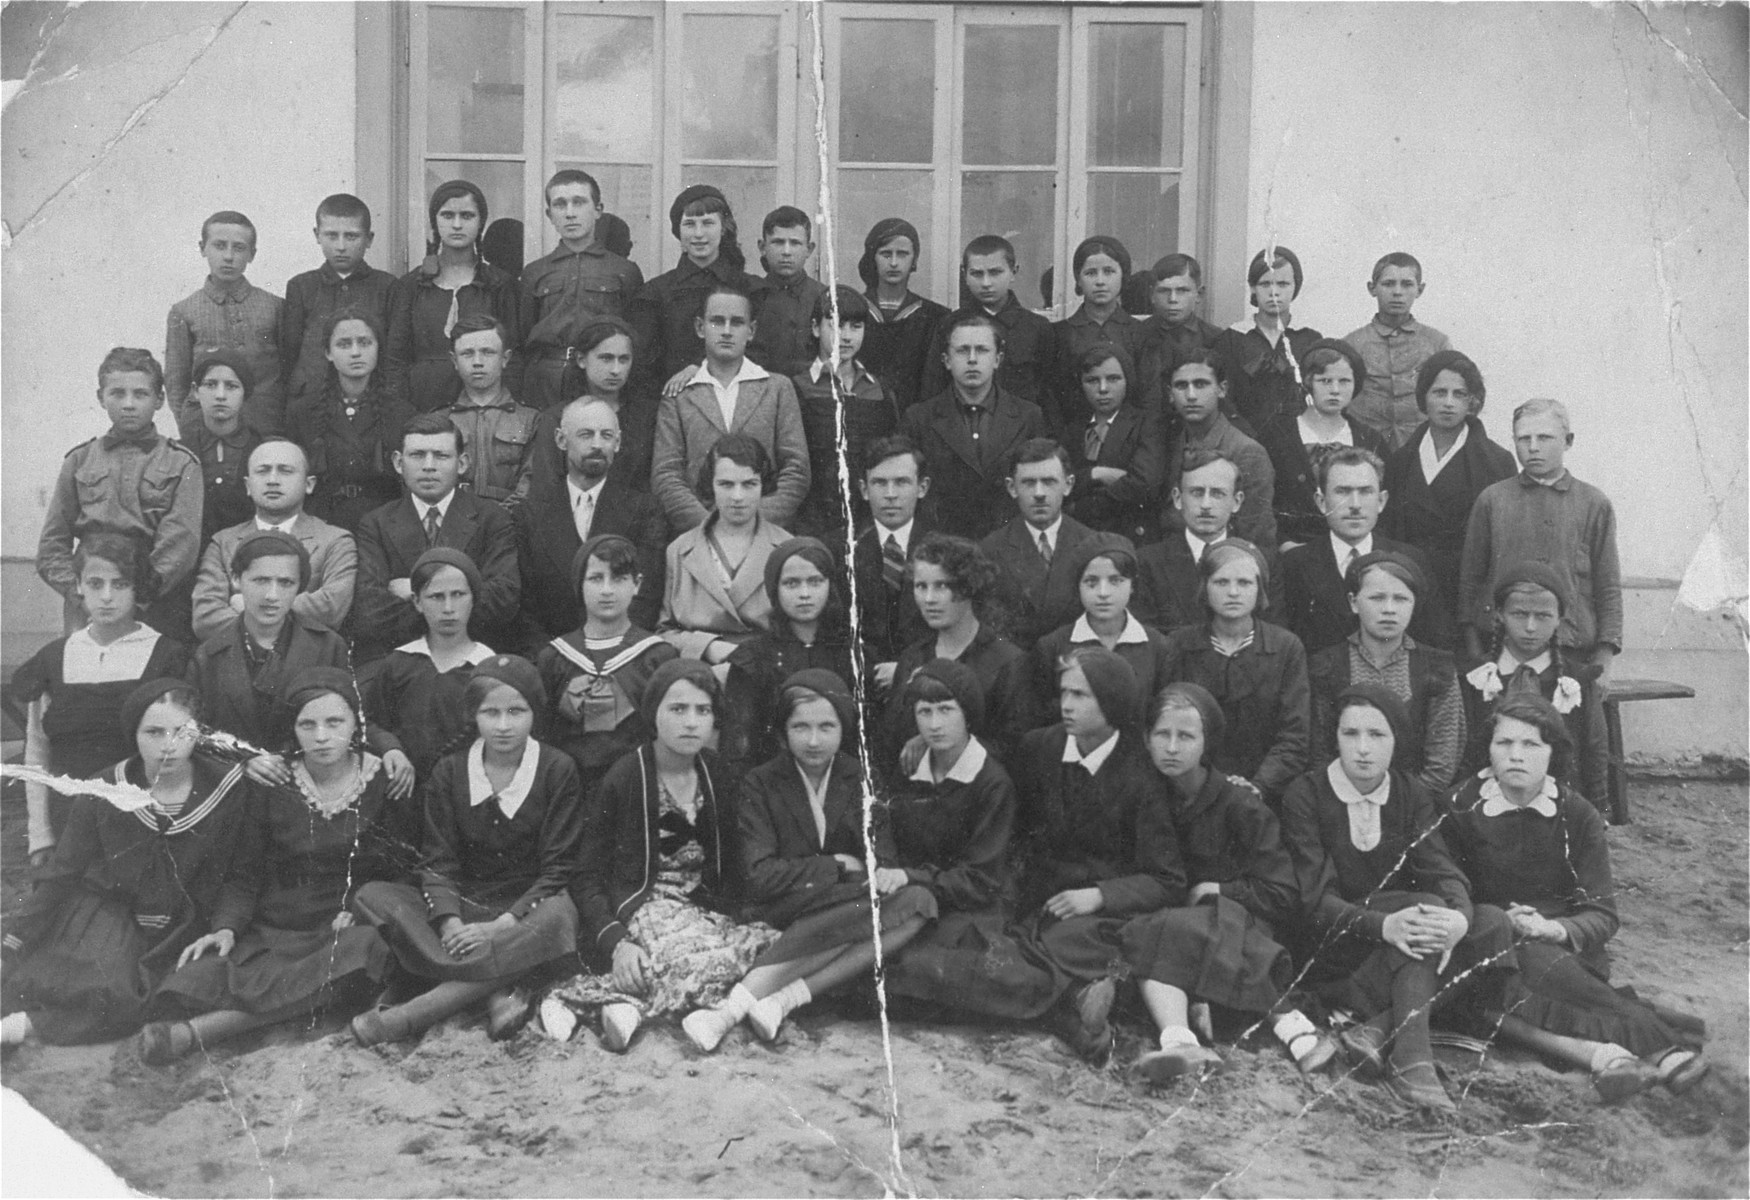 Group portrait of students and teachers in a public Polish high school in Wegrow, where many of the students were Jewish.    Wladyslaw Wojcik is pictured standing in the last row, first on the left.